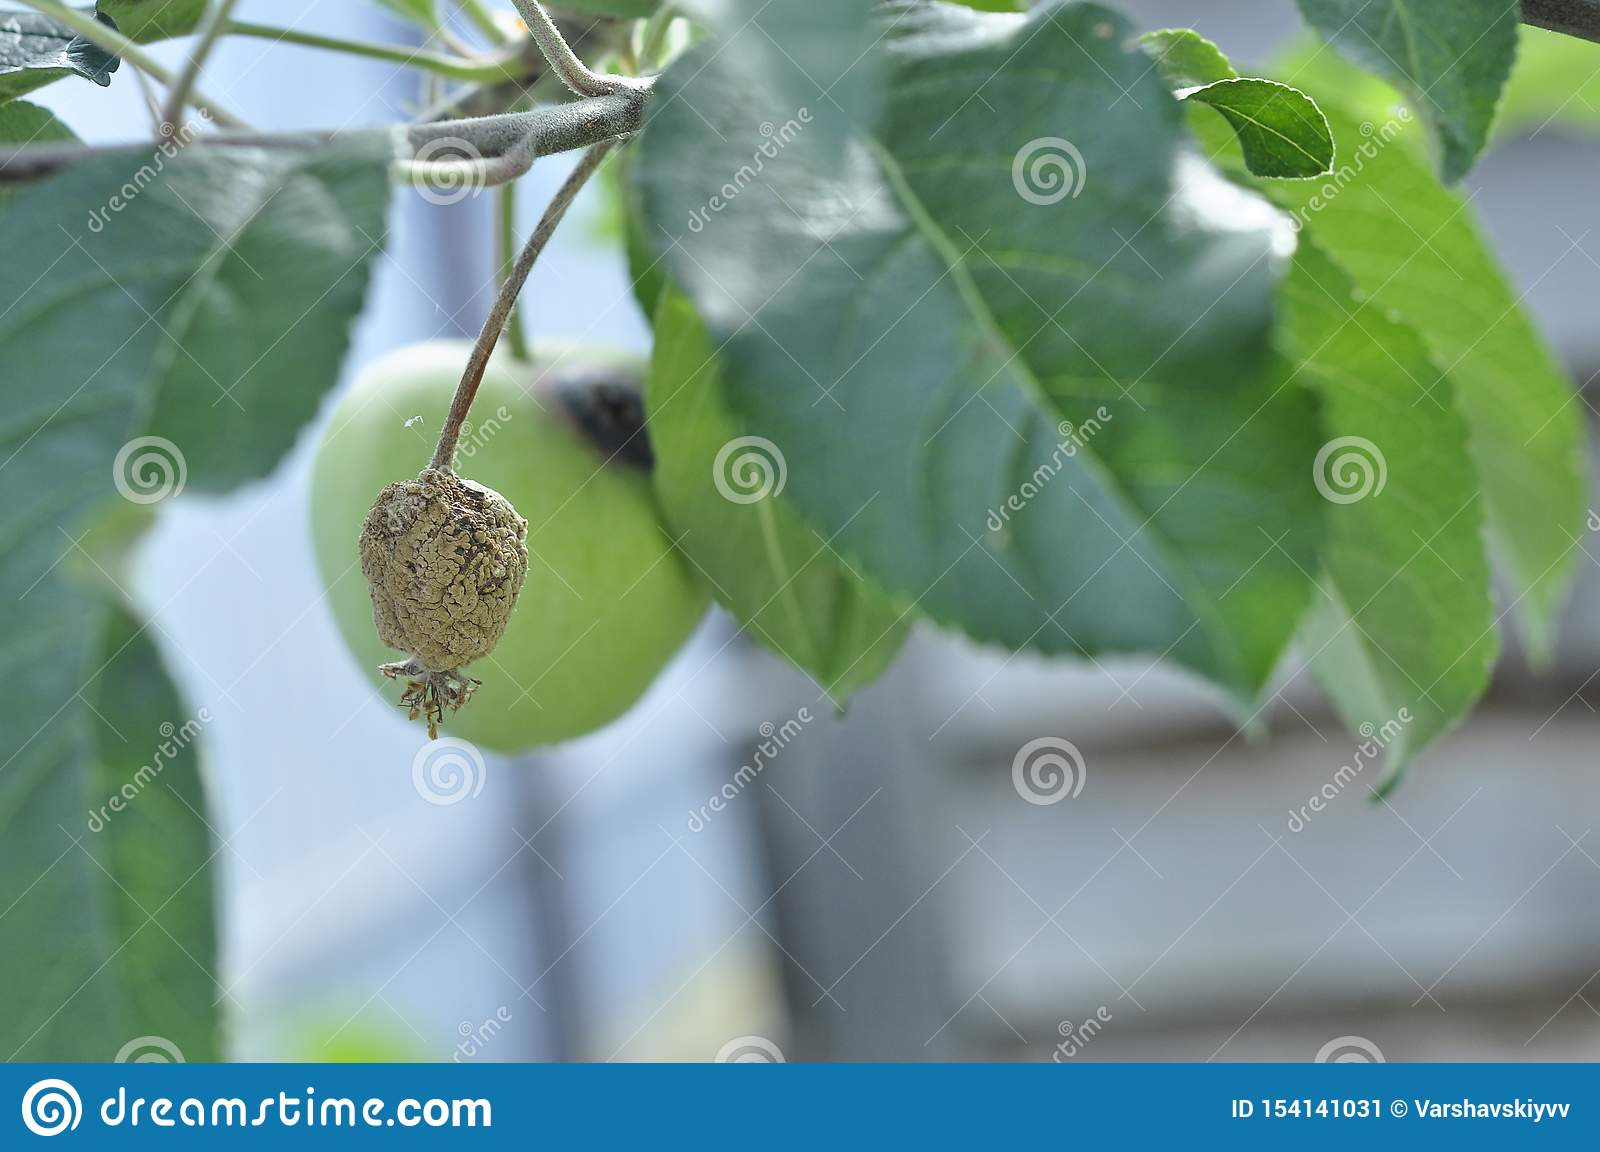 Dried unripe apples on a tree are wormy spoiled. Bad harvest